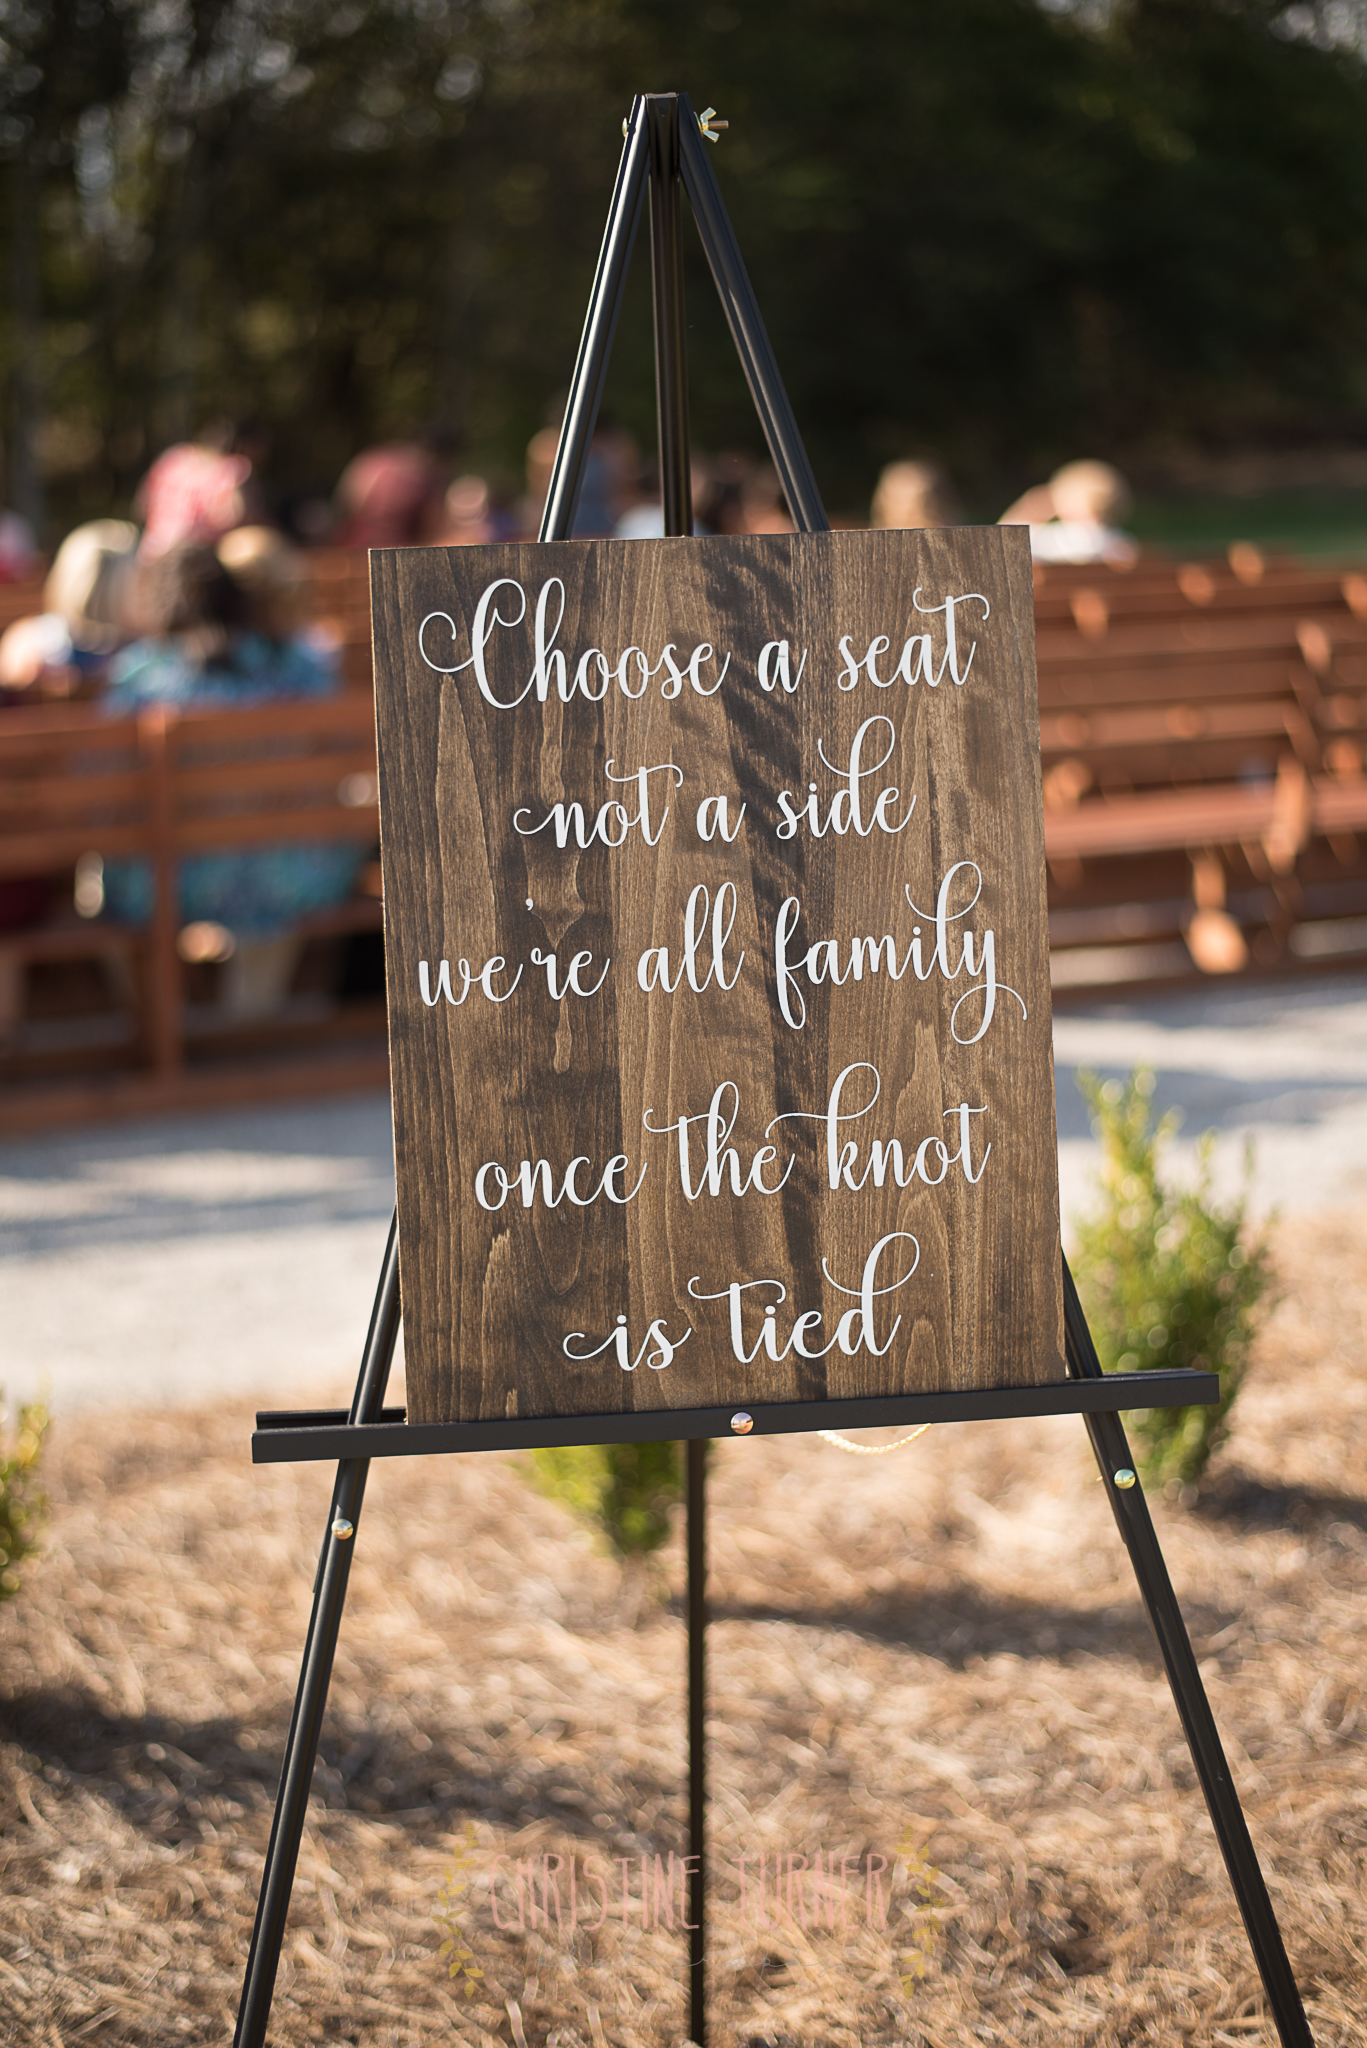 Duell Wedding (23 of 54)